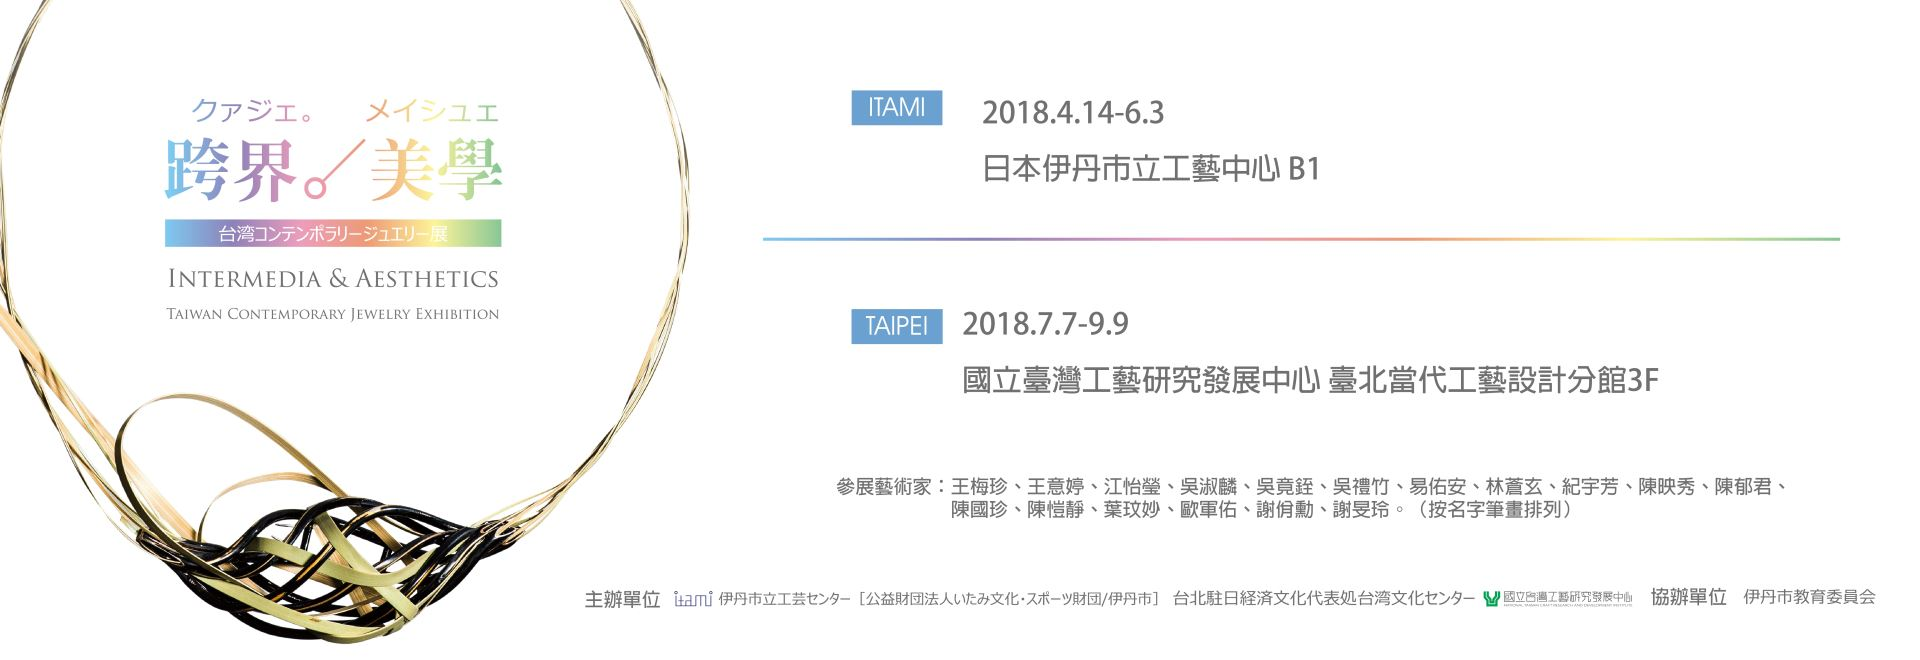 Intermedia & Aesthetics: Taiwan Contemporary Jewelry Exhibition[另開新視窗]